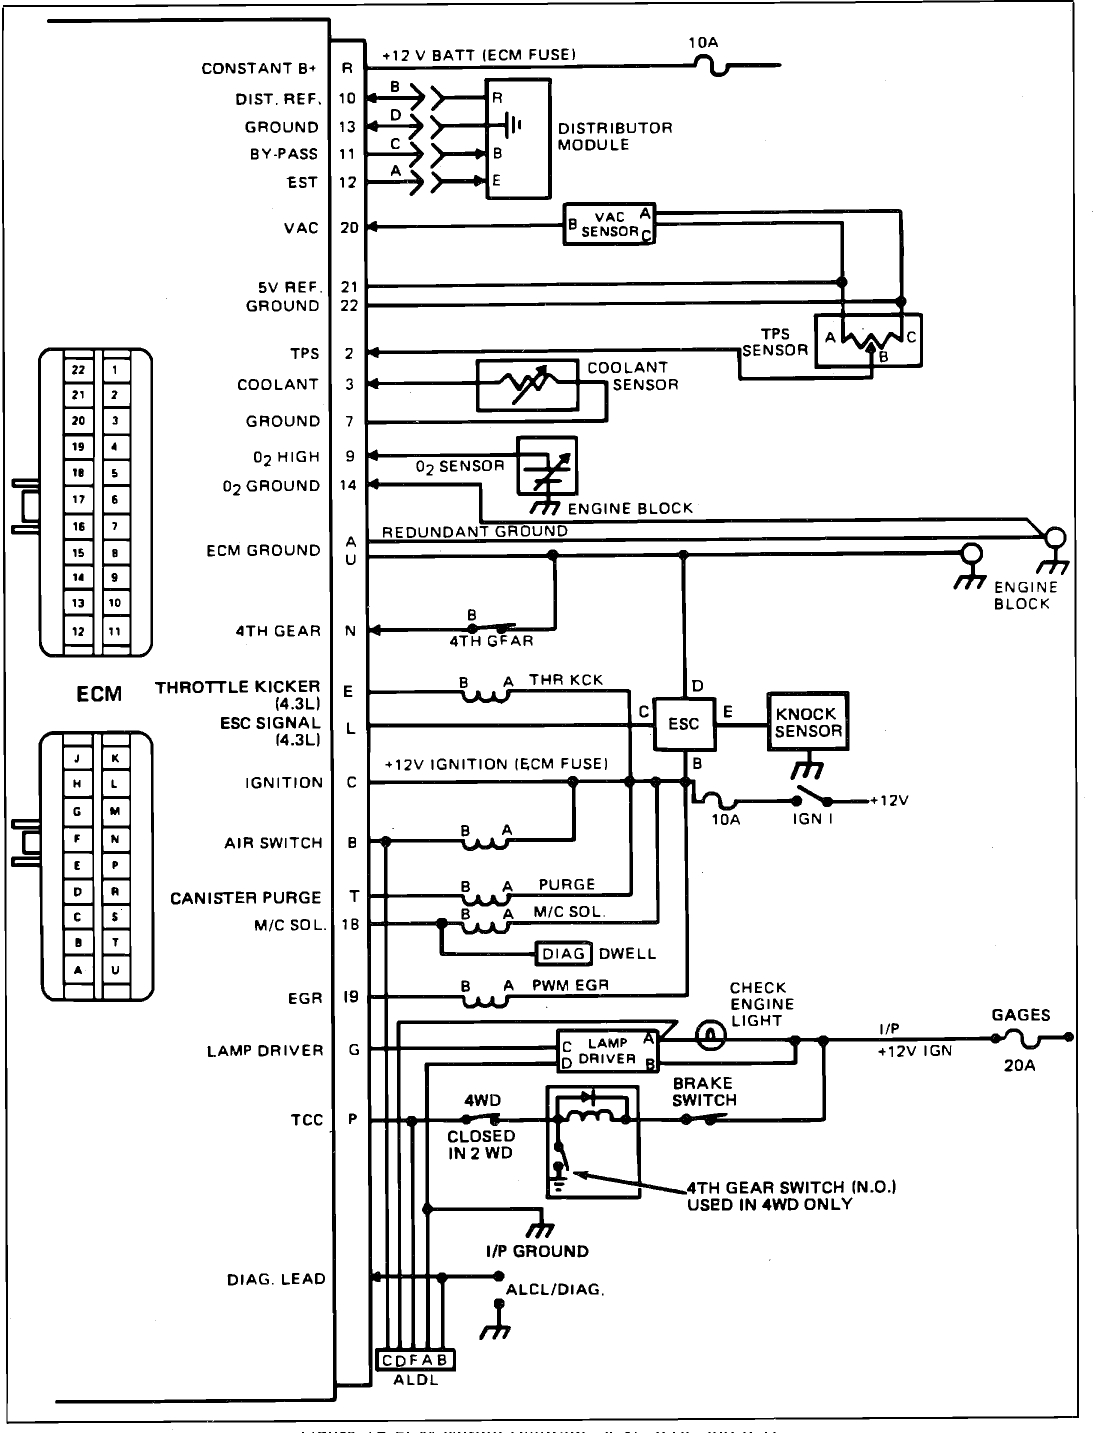 Diagram Car Fuse Box Wiring Diagram Full Version Hd Quality Wiring Diagram Spicyschematicsm Sms3 It